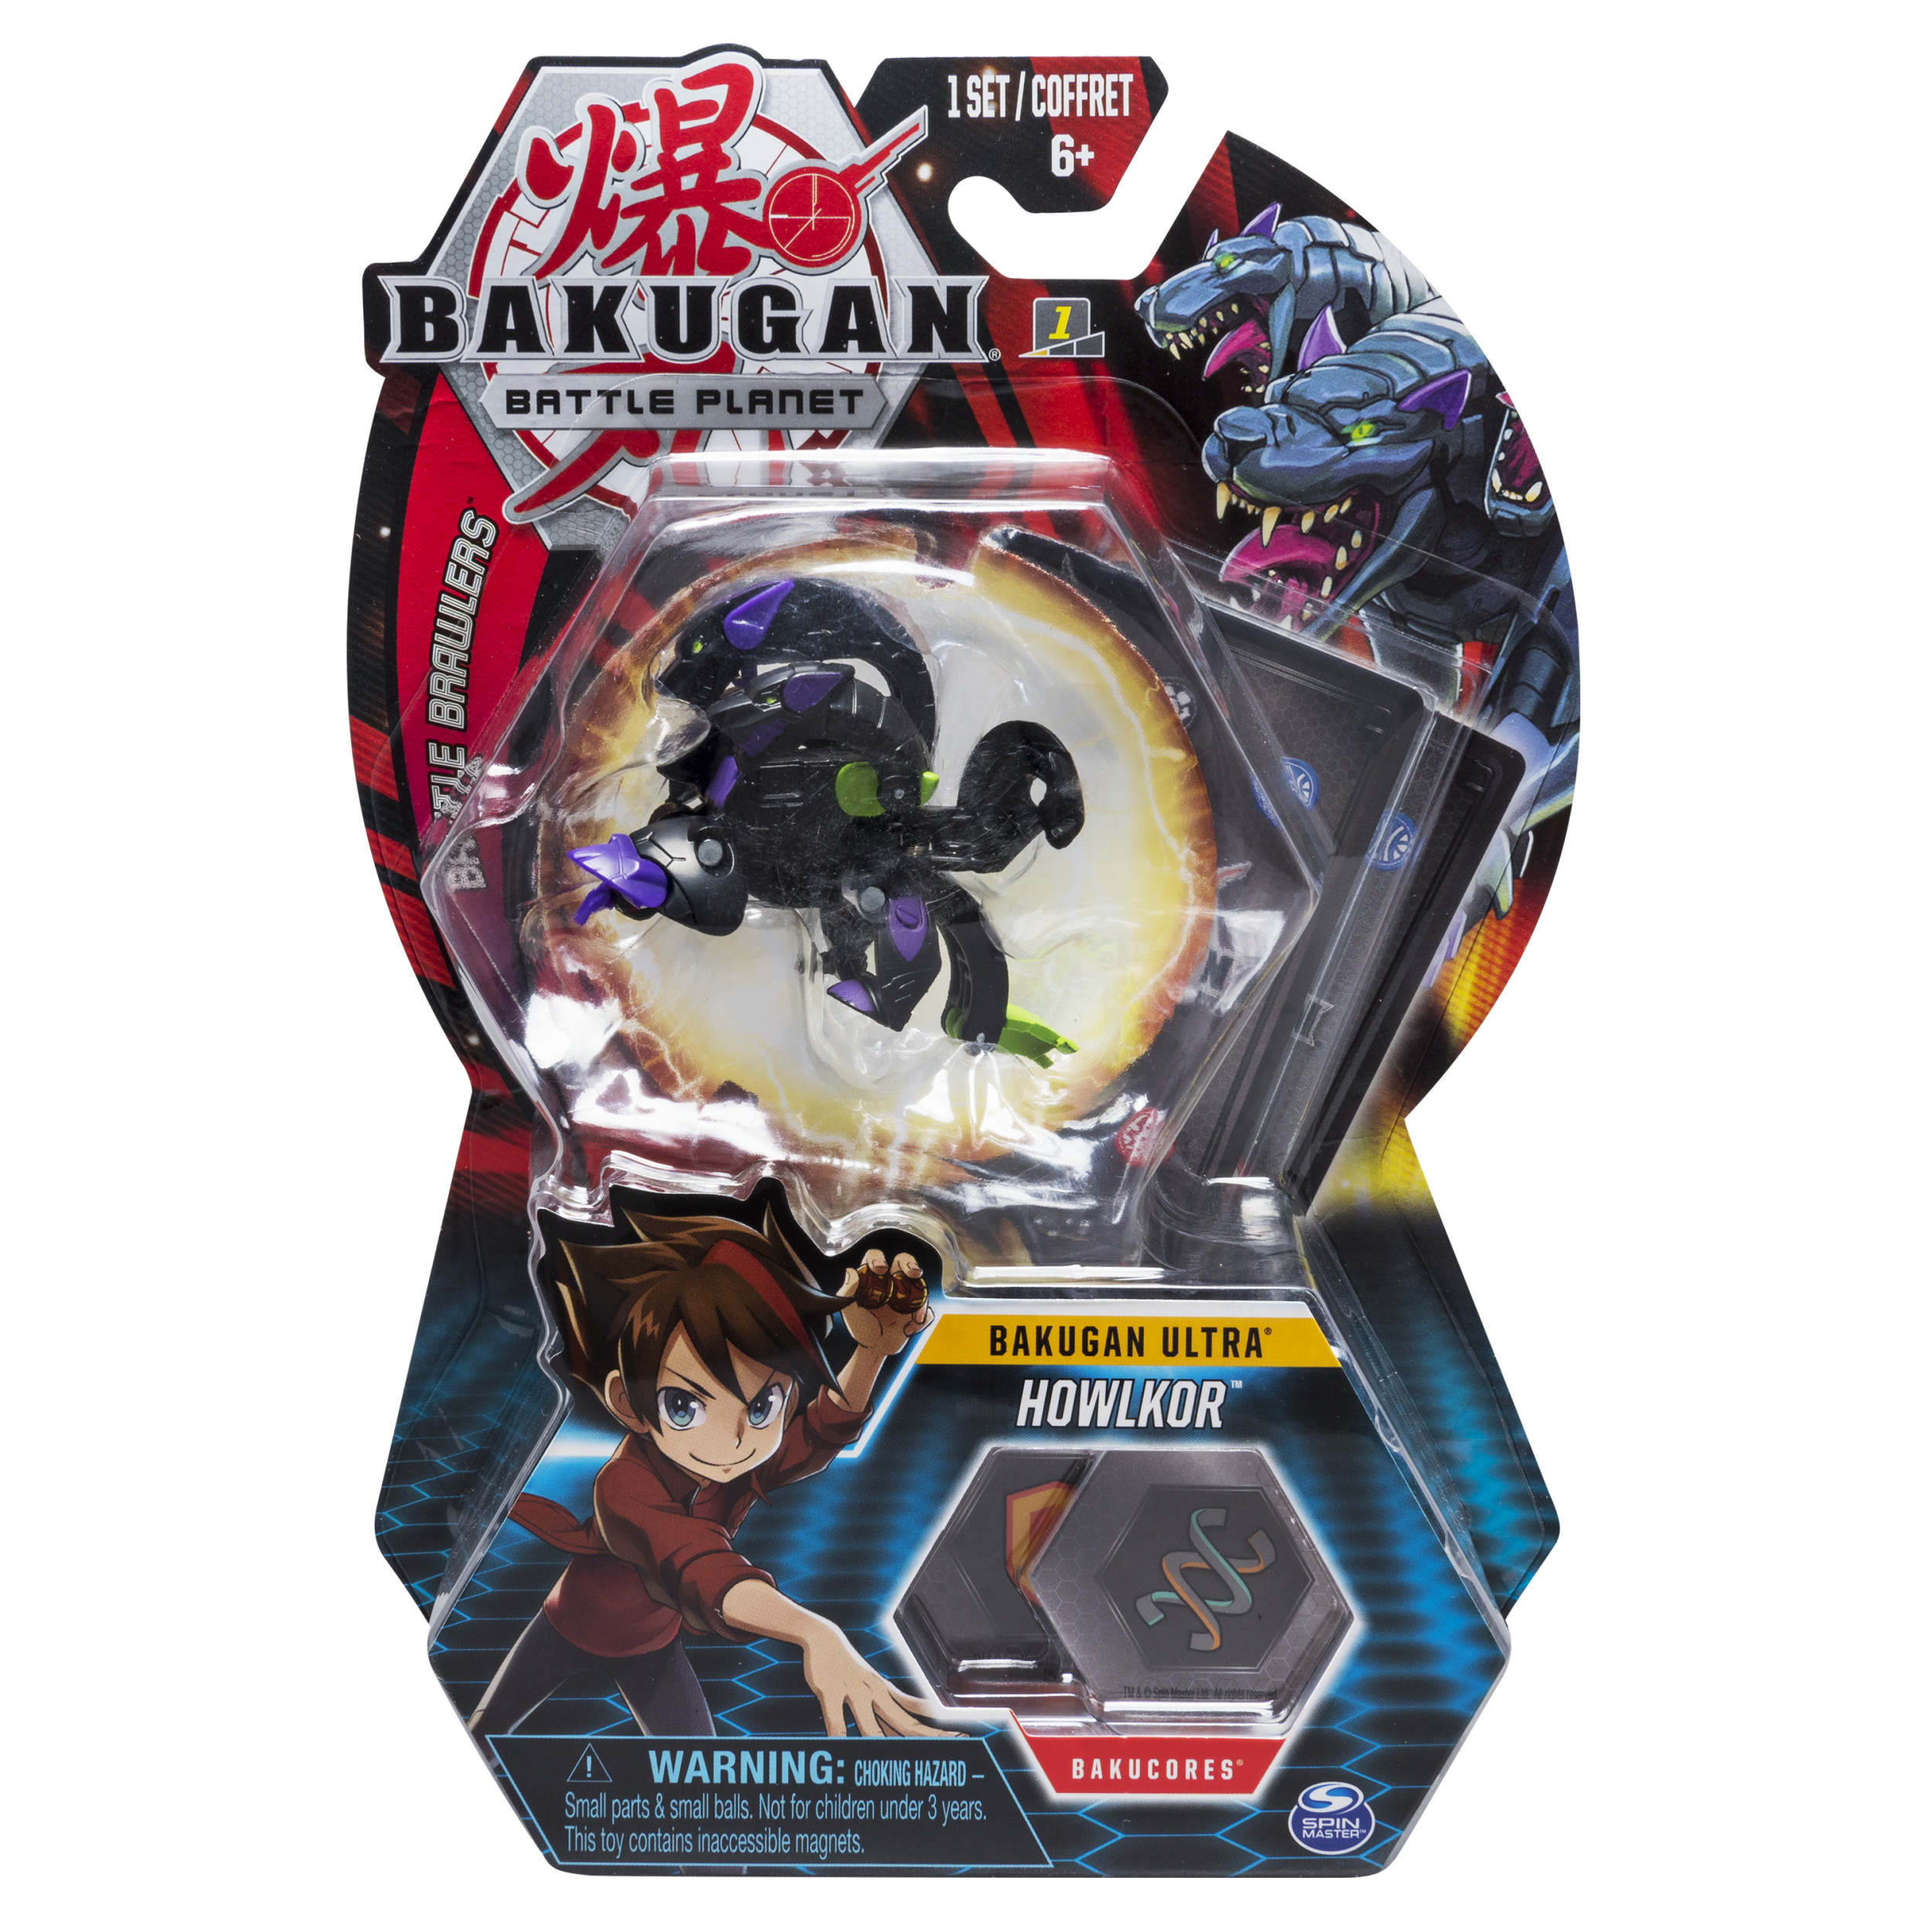 Bakugan Ultra, Howlkor, 3-inch Tall Collectible Transforming Creature, for Ages 6 and Up